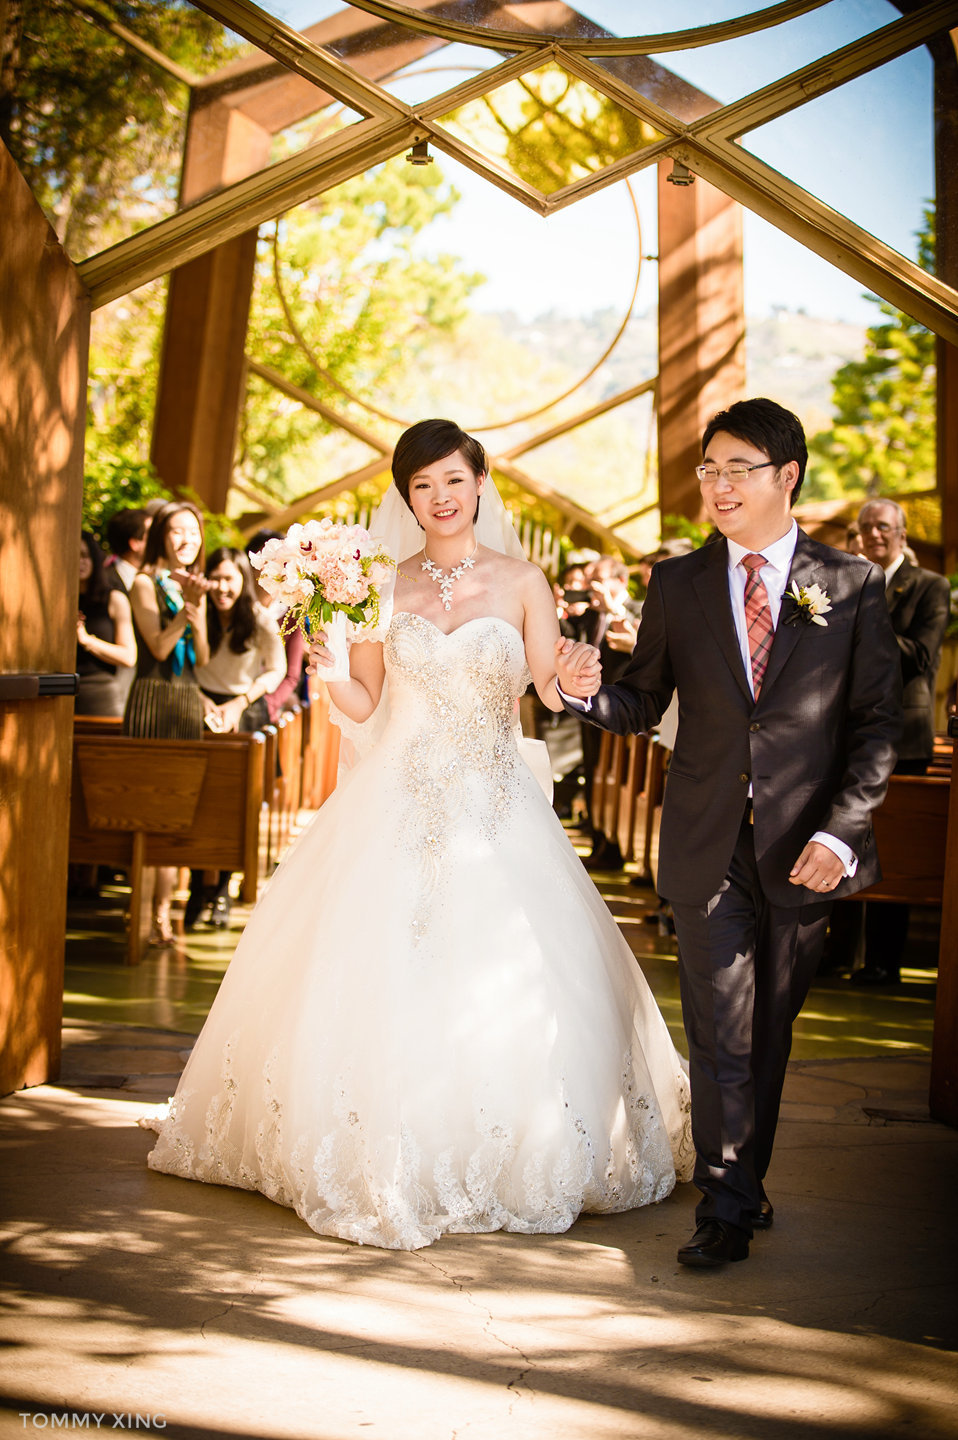 Los Angeles Chinese Wedding Photographer WAYFARERS CHAPEL Tommy Xing 洛杉矶婚礼婚纱摄影 091.jpg